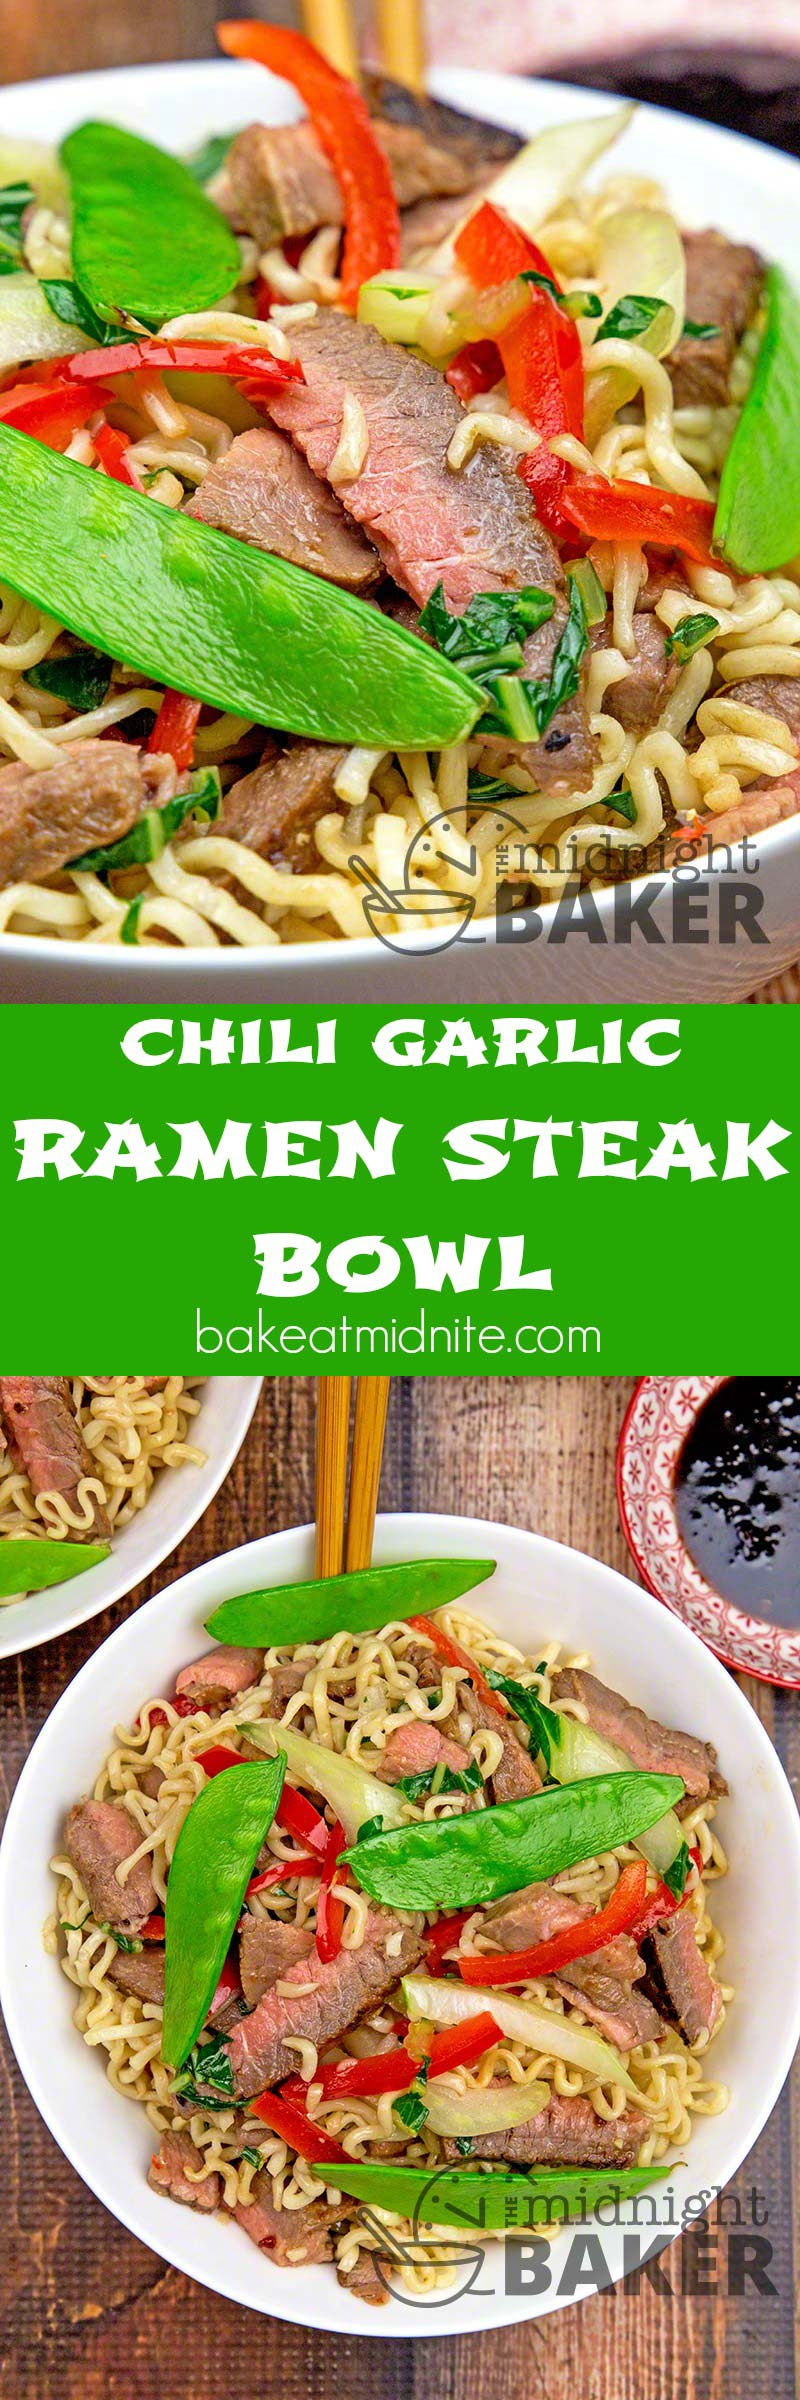 Easy peasy meal! Leftover steak, ramen noodles and veggies with a great chili garlic flavor. What could be easier?